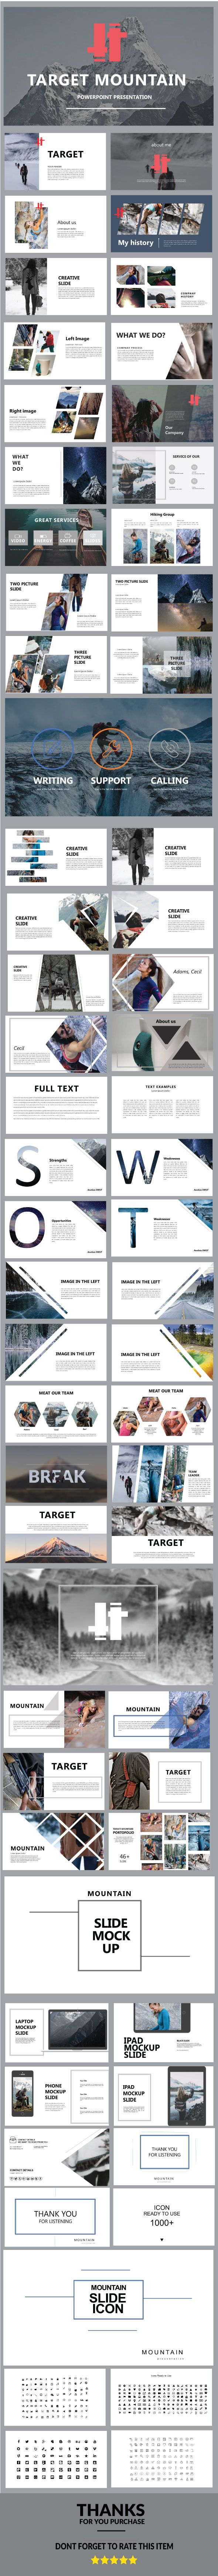 Target Mountain Presentation Templates - #Business #PowerPoint #Templates Download here: https://graphicriver.net/item/target-mountain-presentation-templates/19488178?ref=alena994